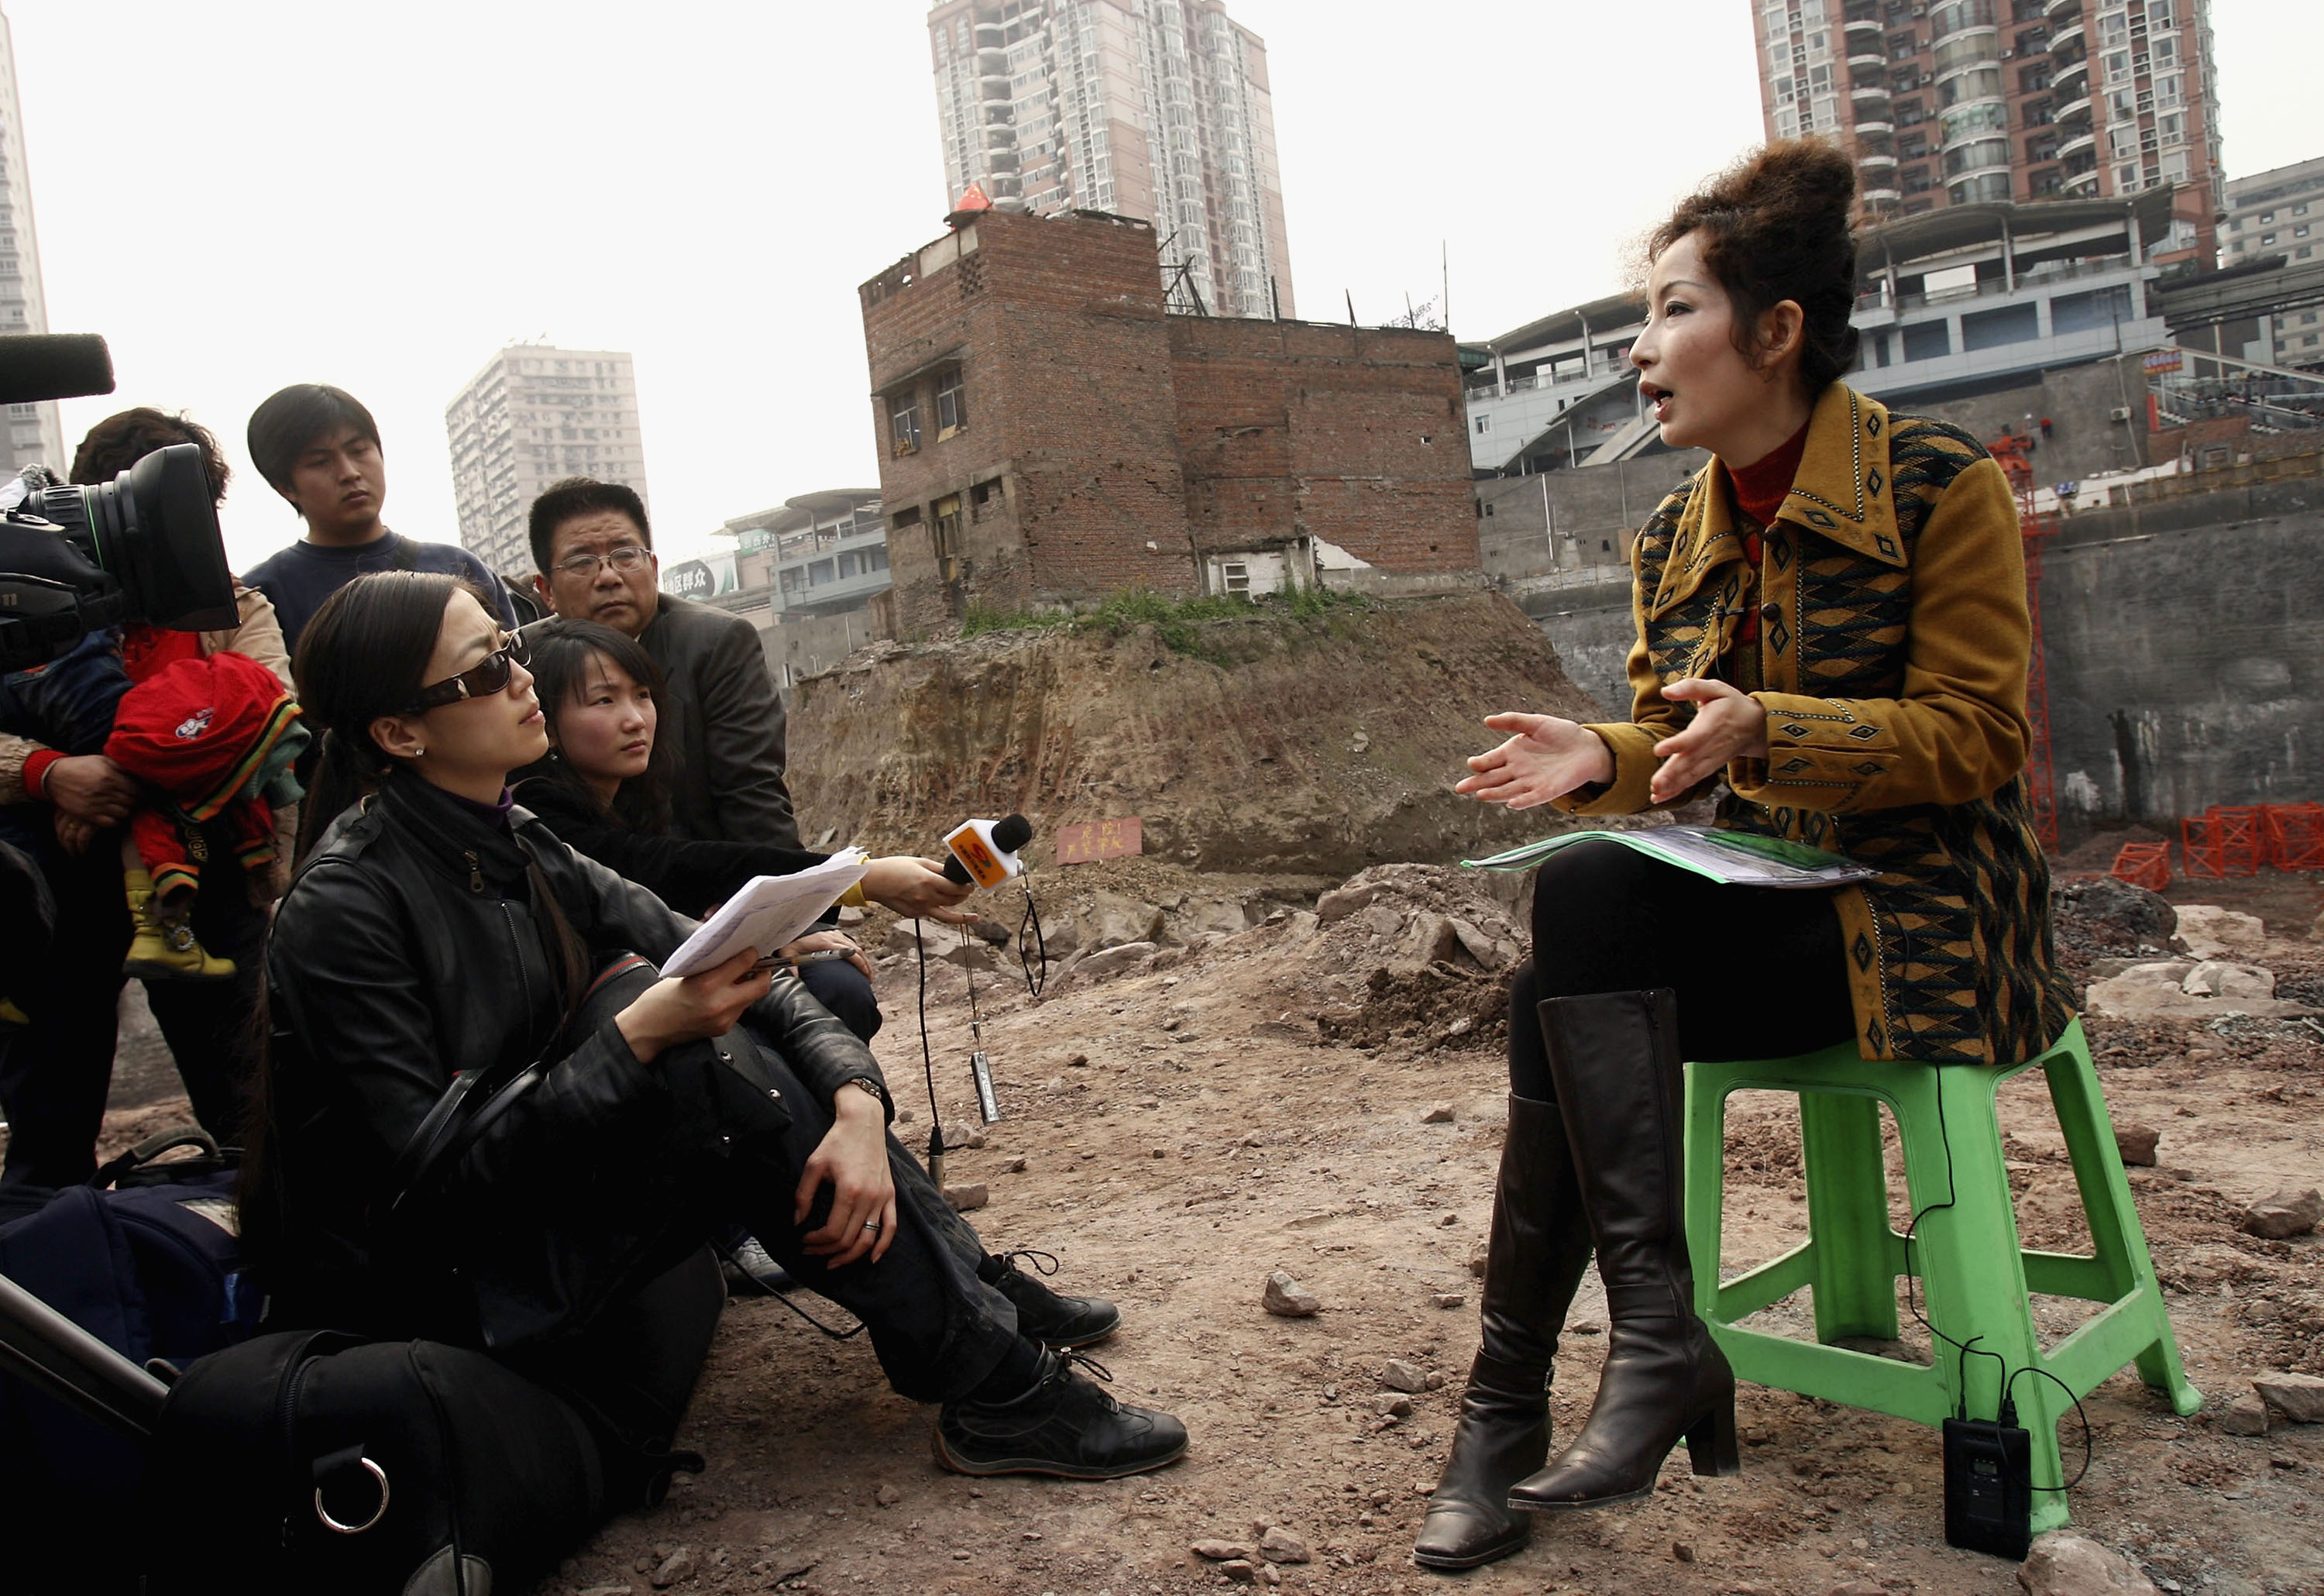 CHONGQING, CHINA - MARCH 22: (CHINA OUT) Wu Ping (R), the owner of a building sitting on its own island of land amid construction all around it, answers reporters' questions March 22, 2007 in Chongqing Municipality, China. The homeowner, who has hung a banner and the national flag in protest, has refused to sell to a developer who went ahead with construction around the site. The Jiulongpo District Court has ordered the household to move out before March 22. The National People's Congress, China's legislature, just approved a much-debated new property law that for the first itme provides legal protections for private assets in China. (Photo by China Photos/Getty Images)